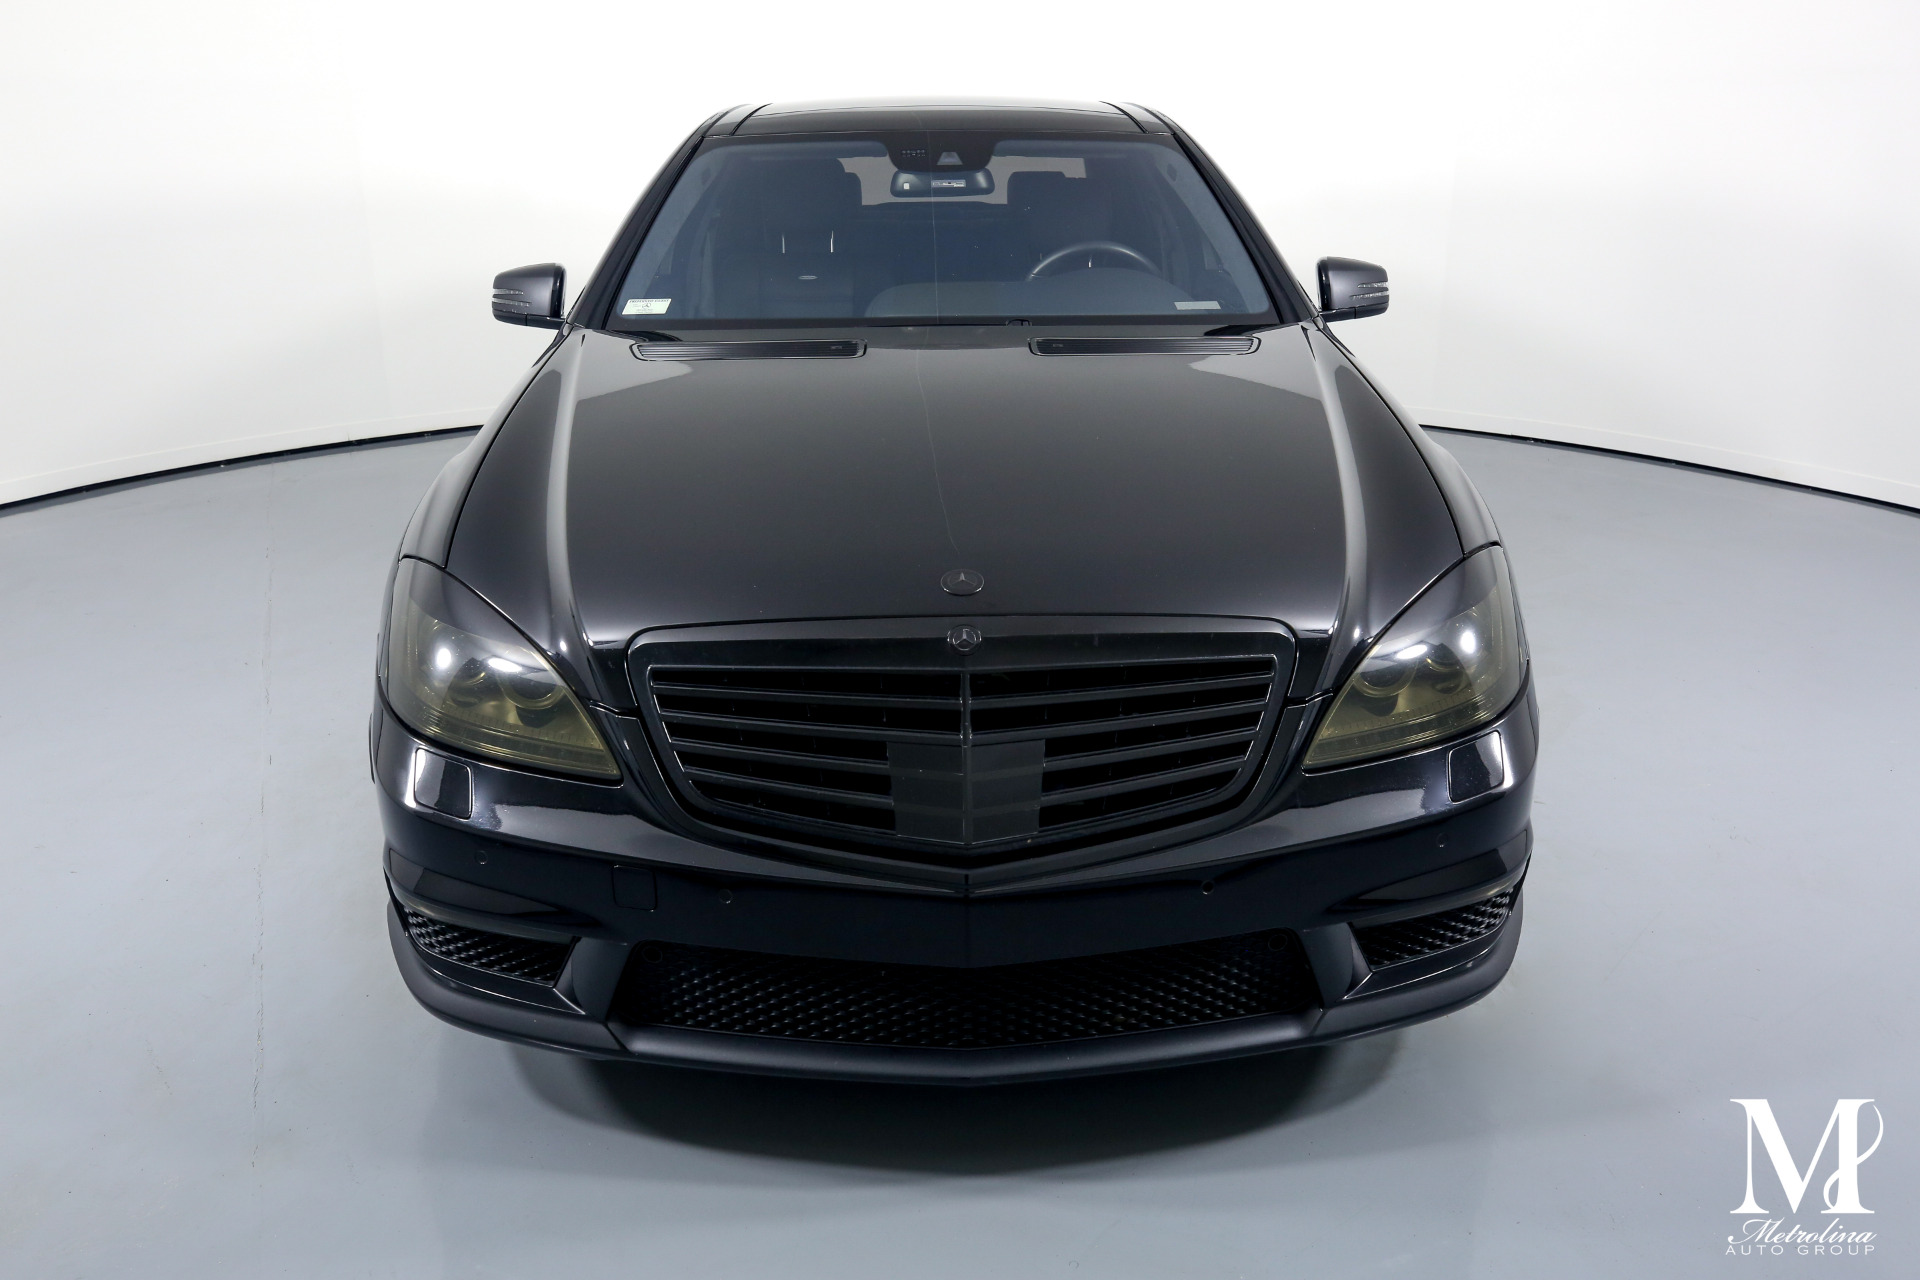 Used 2010 Mercedes-Benz S-Class S 63 AMG for sale $34,996 at Metrolina Auto Group in Charlotte NC 28217 - 3